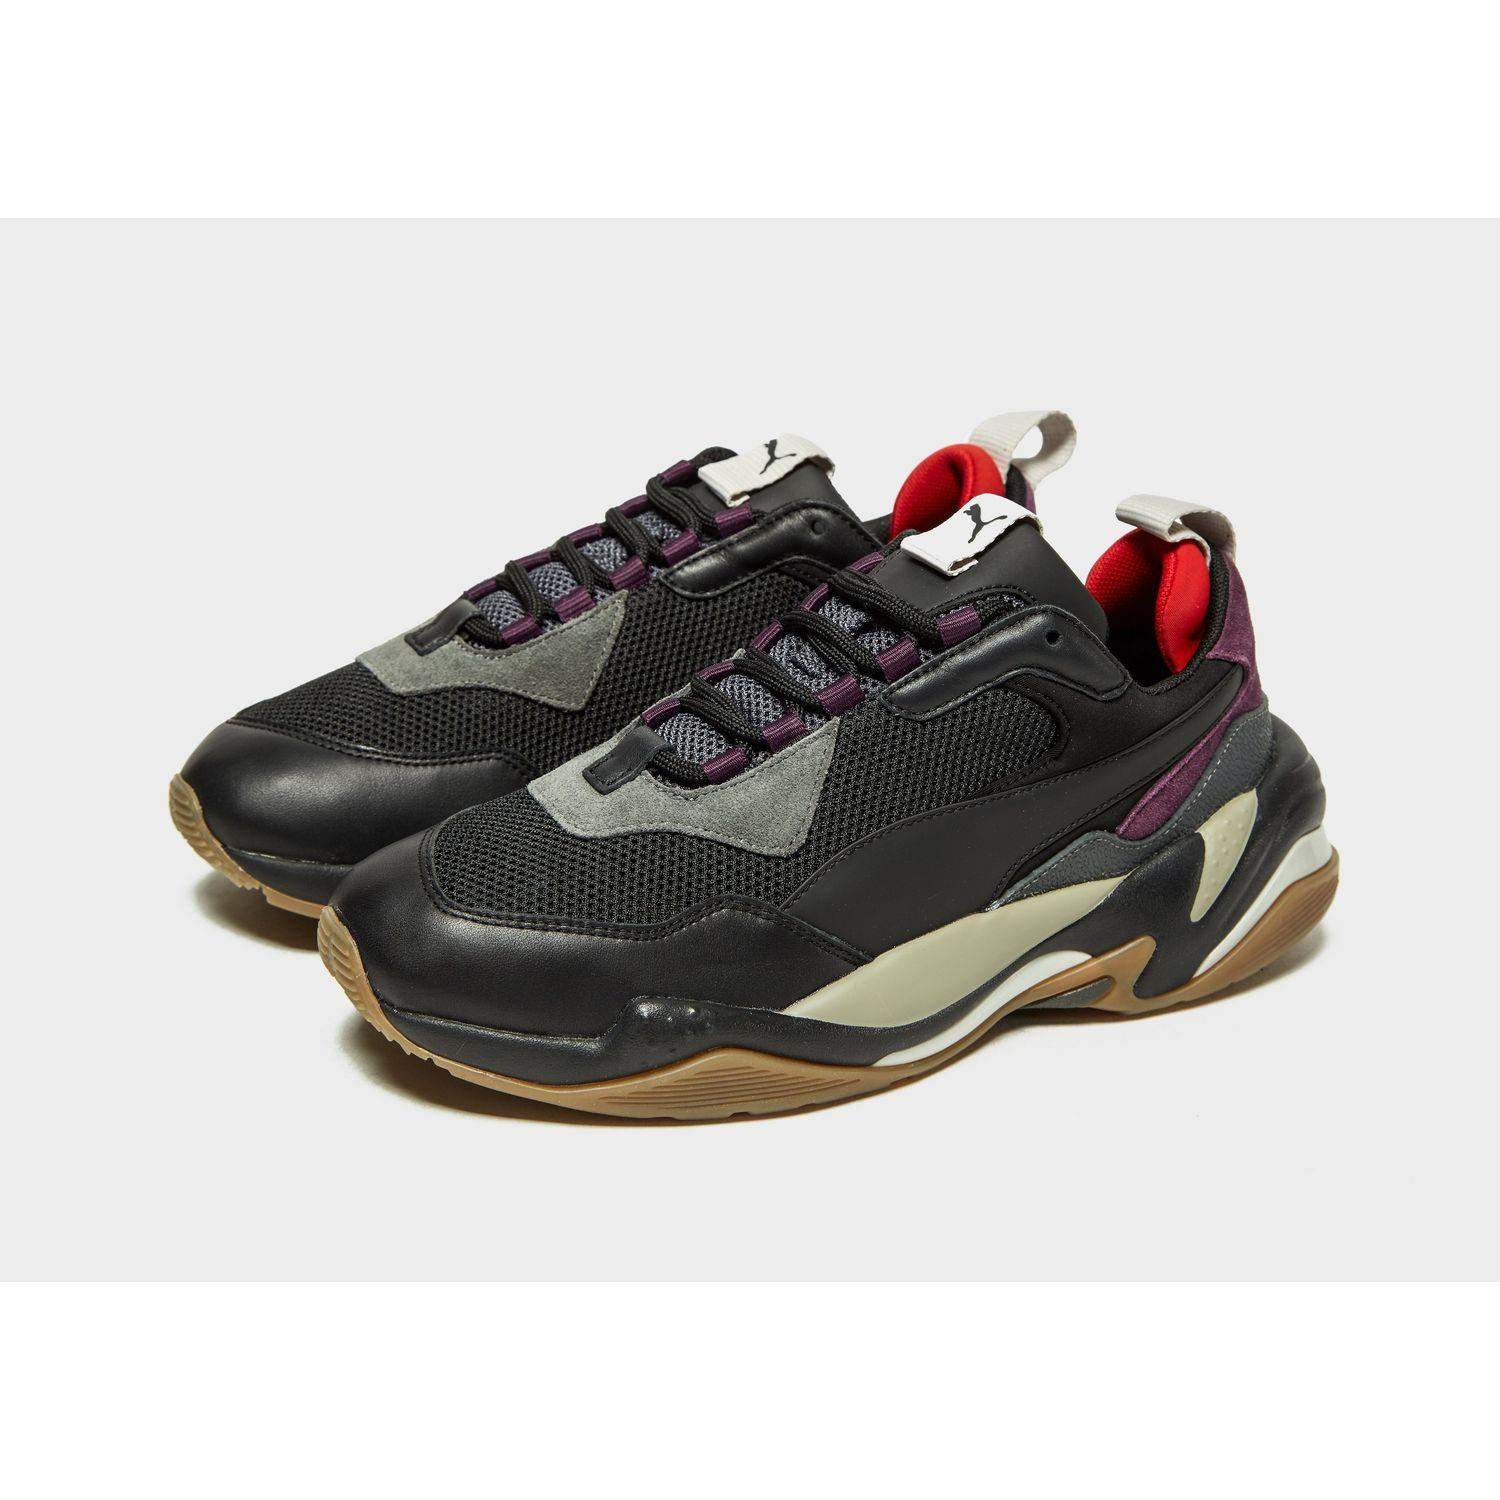 PUMA Leather Thunder Spectra in Black